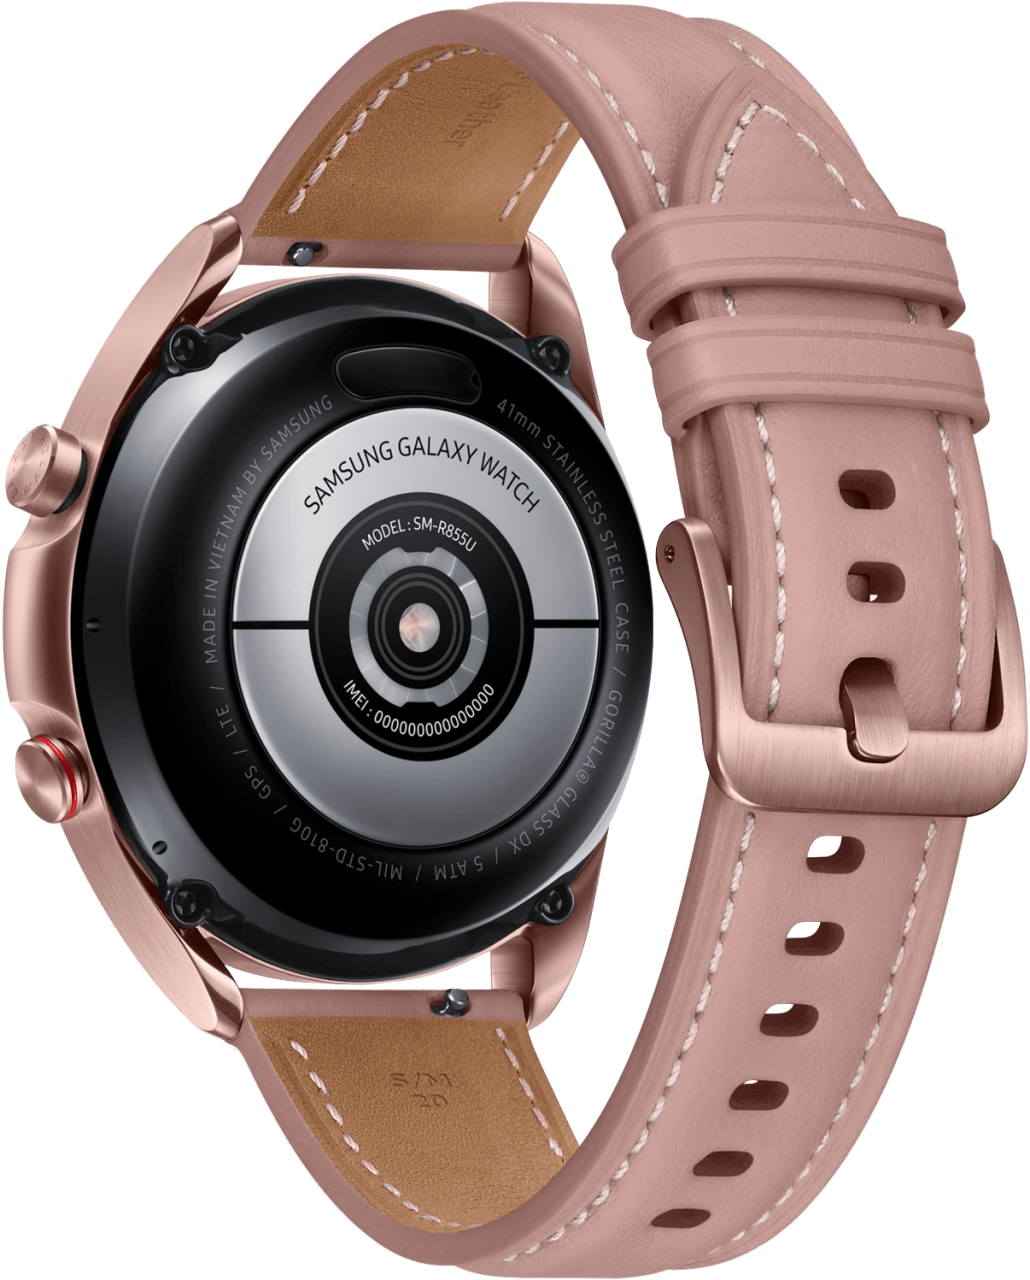 Mystic Bronze Samsung Galaxy Watch 3 (LTE), 41mm Stainless steel case, Real leather band.2